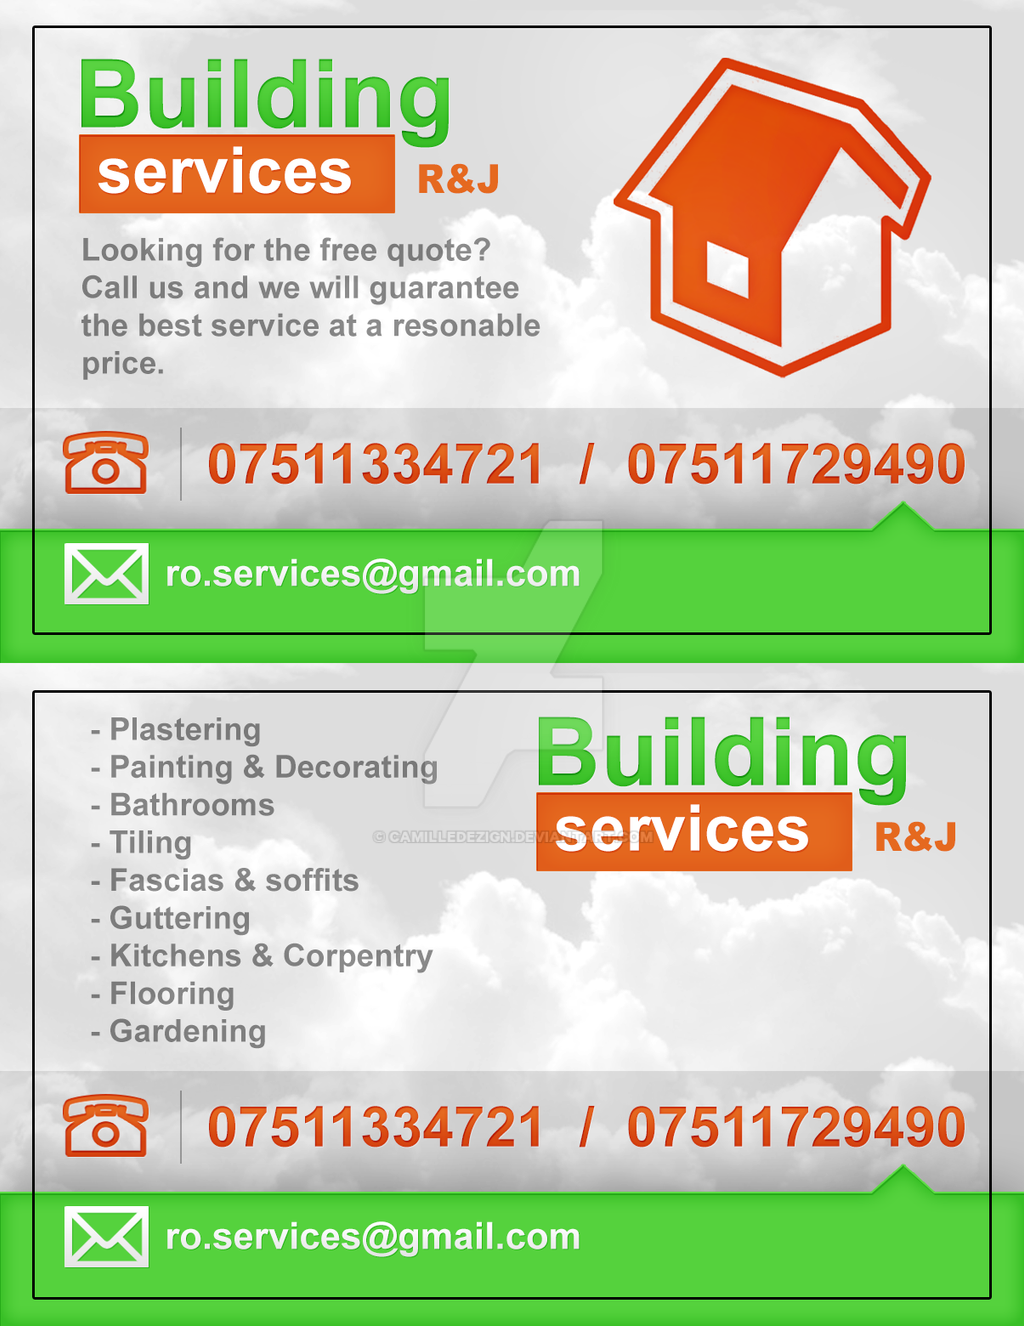 Building Services - Business card by camilledezign on DeviantArt